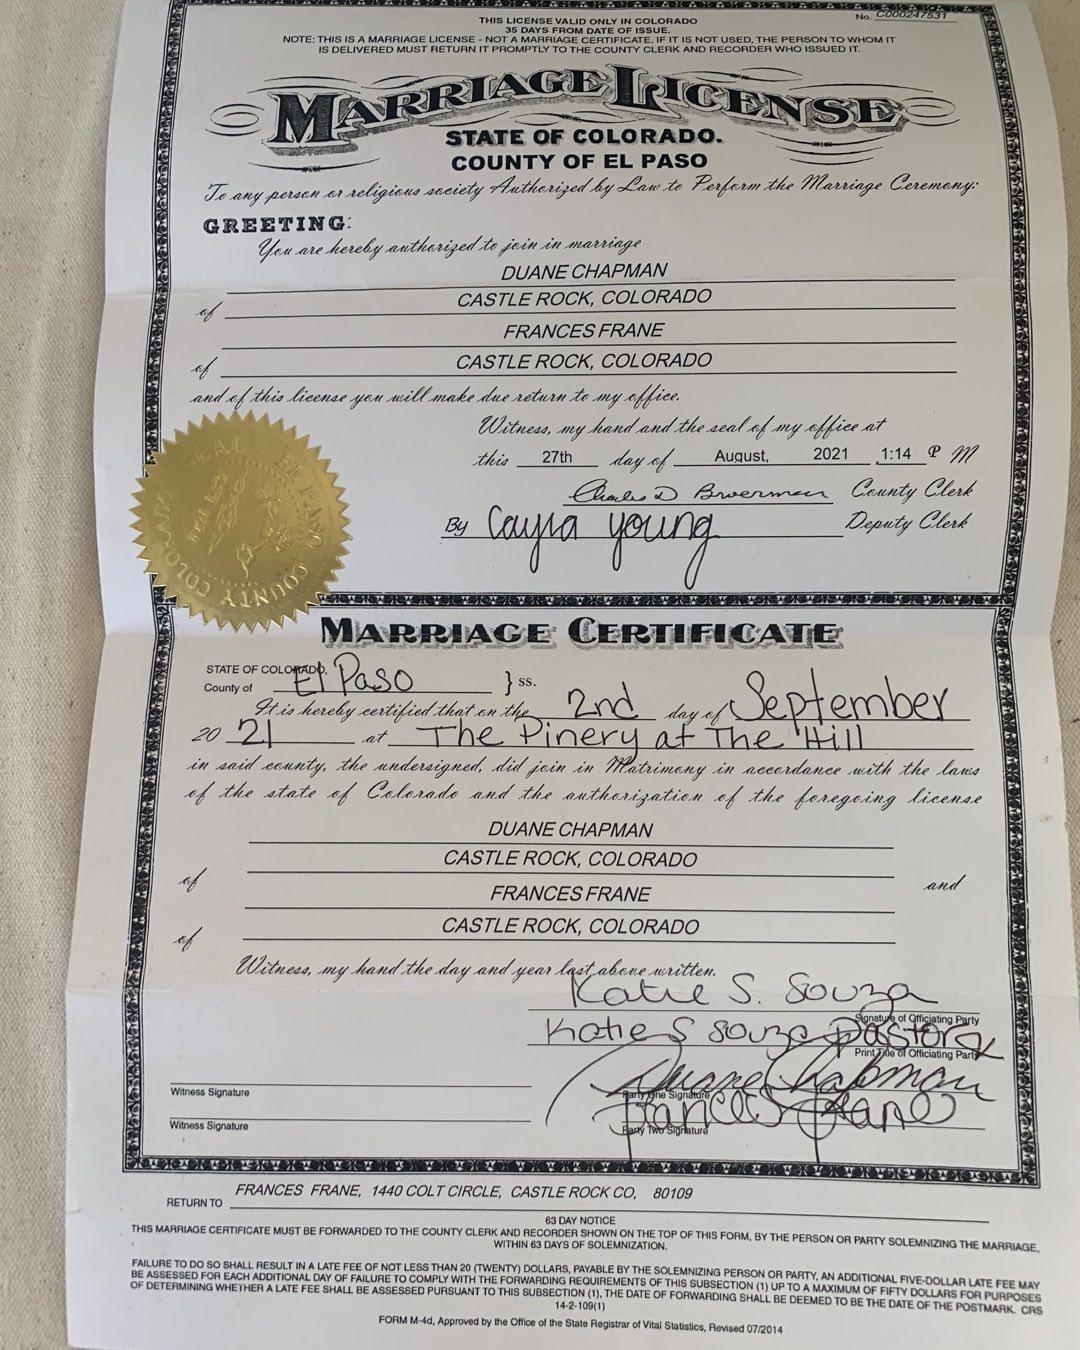 Dog The Bounty Hunter Shows Off His New Marriage License, 'It's Official!'